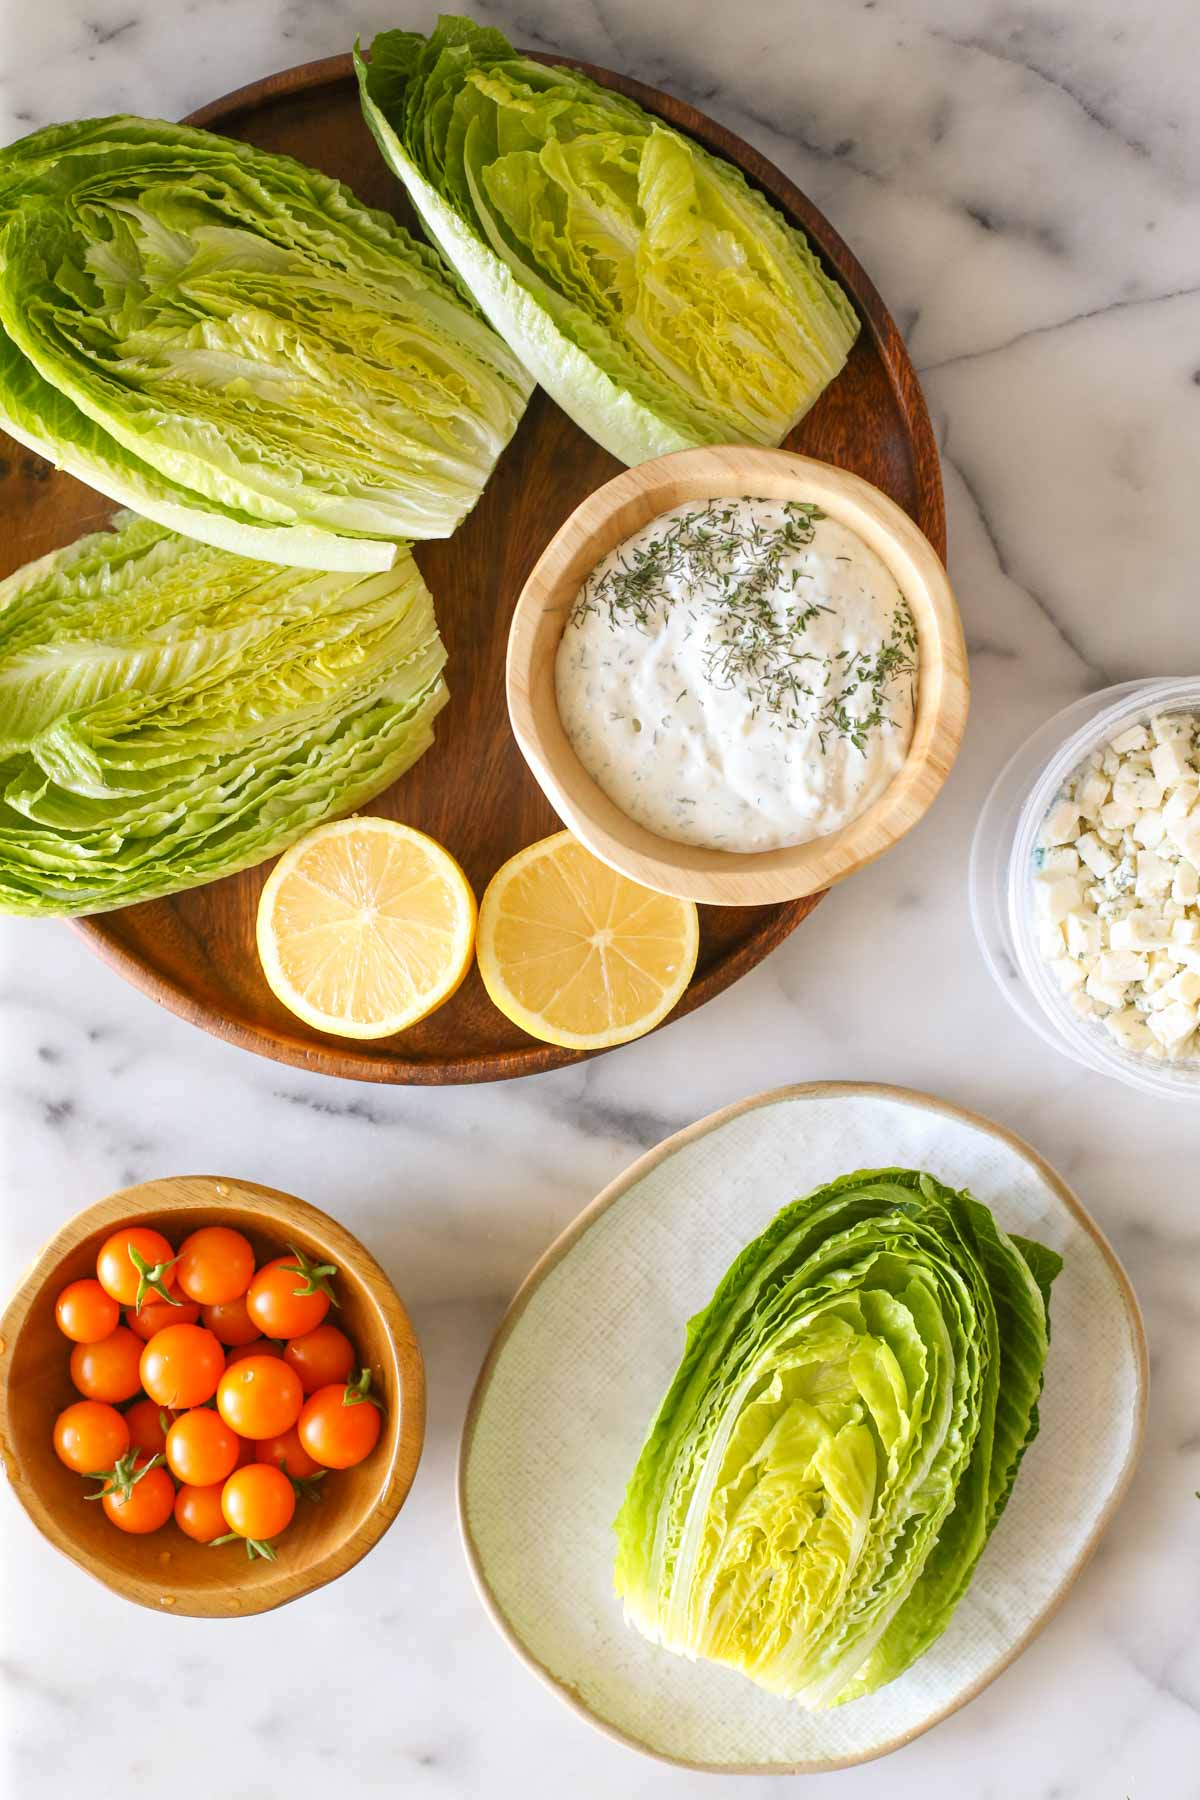 Overhead shot of a wood platter with three romaine lettuce halves, lemon wedges and a wood bowl of the blue cheese dressing on it, sitting next to a wood bowl of Sungold tomatoes, a container of blue cheese and a plate with a romaine lettuce half on it, all on a marble background.